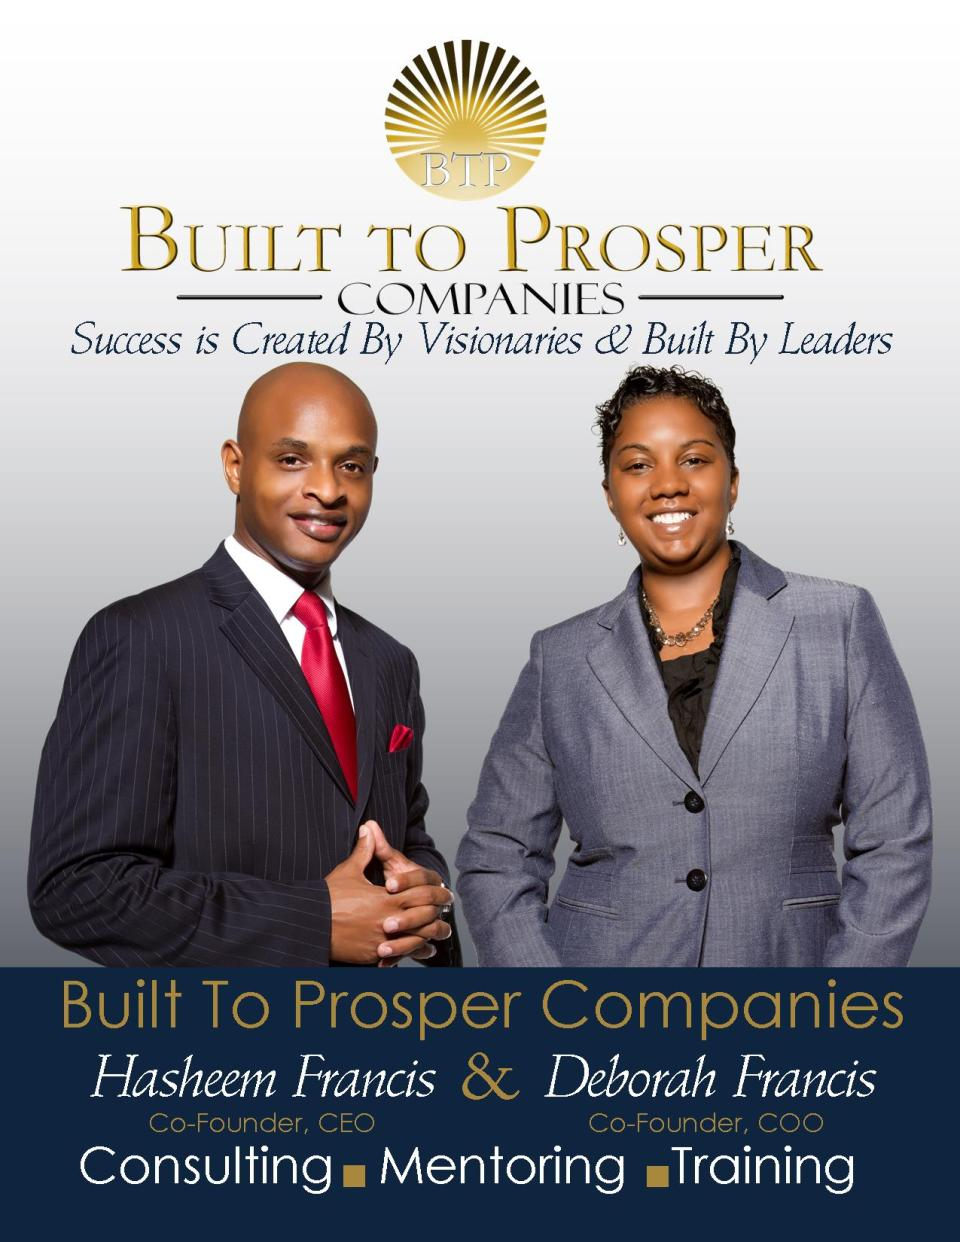 Built To Prosper Companies Inc. Brochure